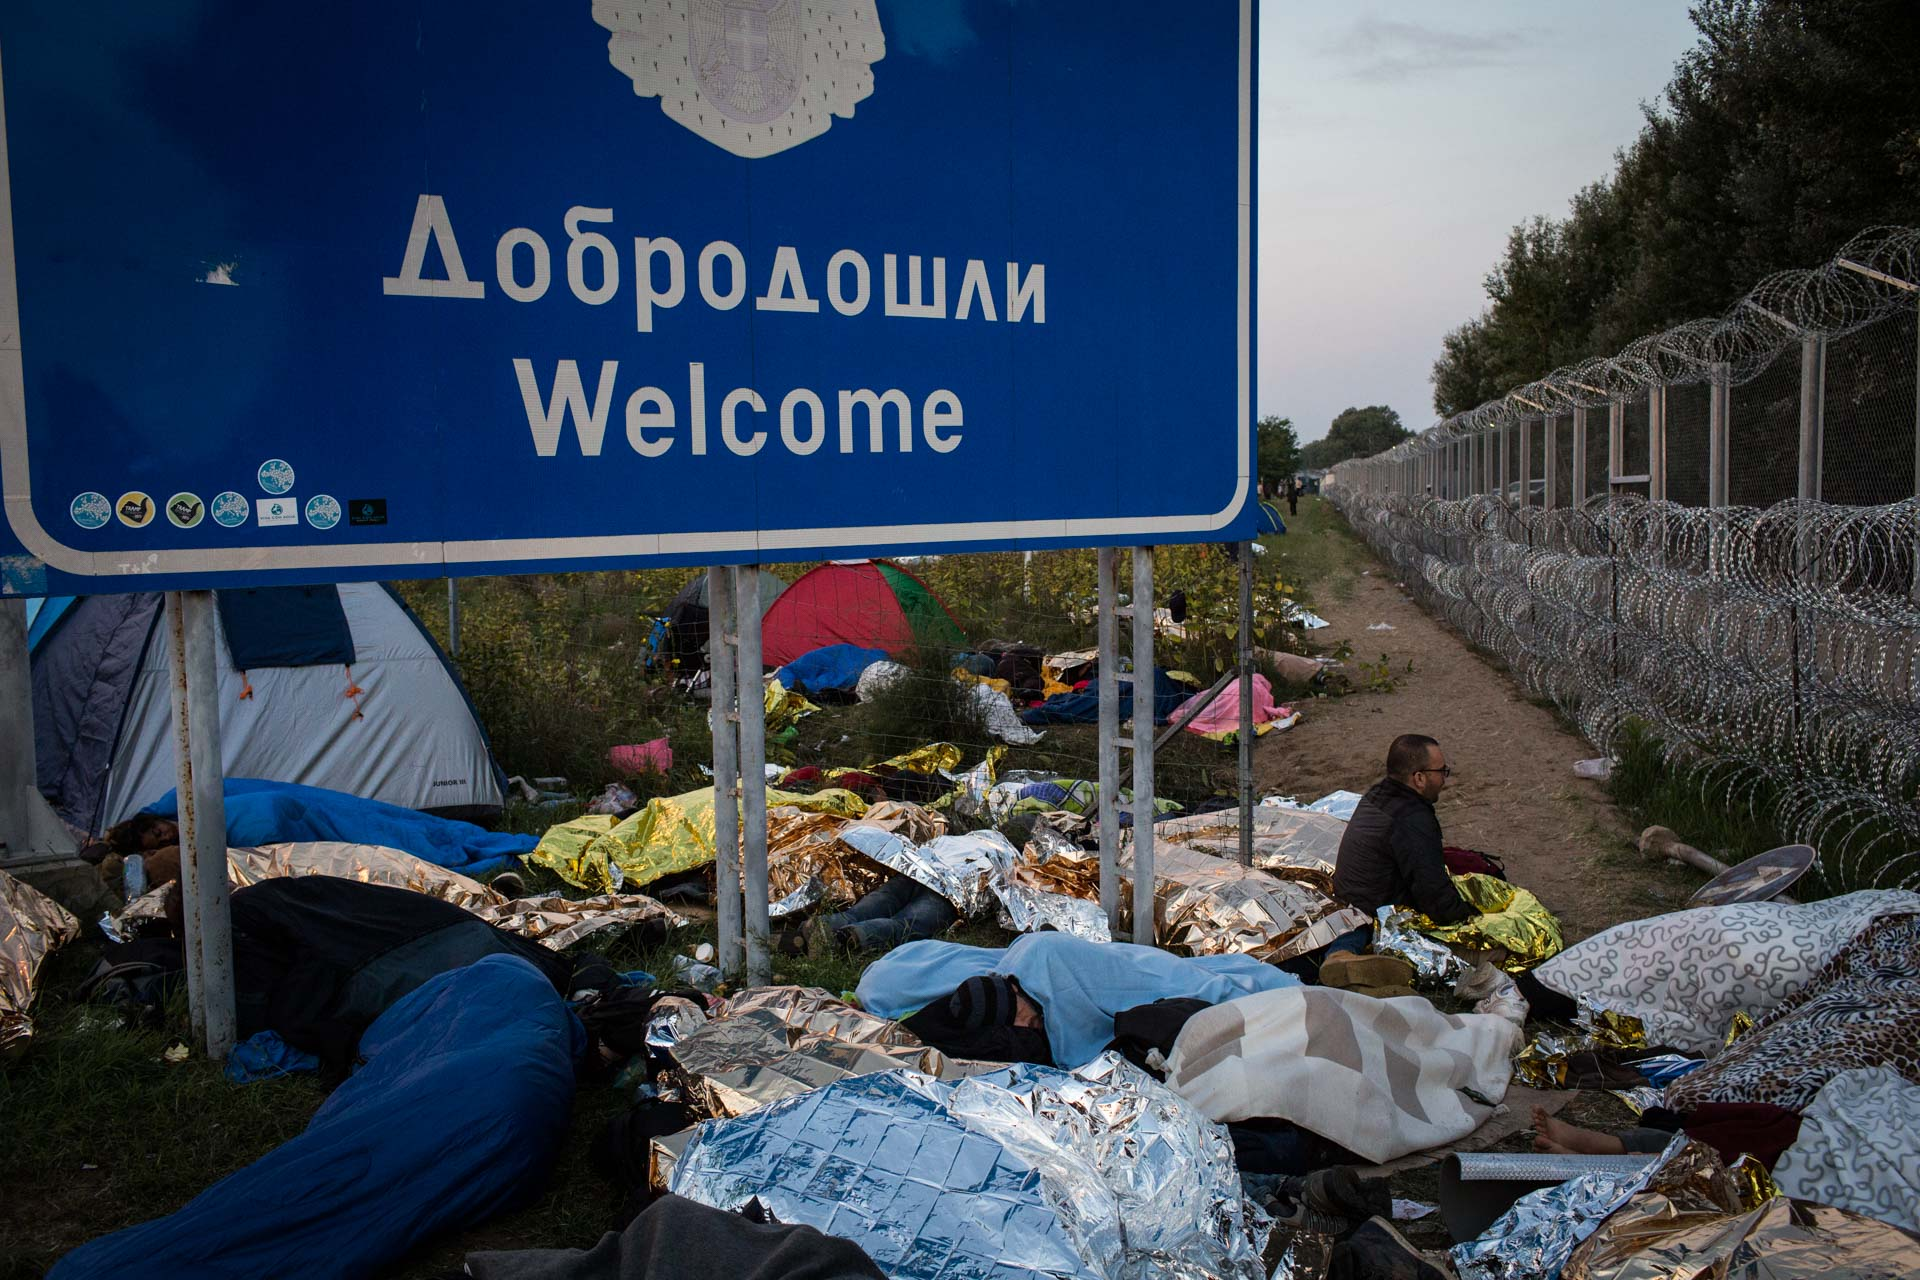 With the border between Serbia and Hungary closed, many people set up camp on a now closed highway directly on the fence separating the two countries.